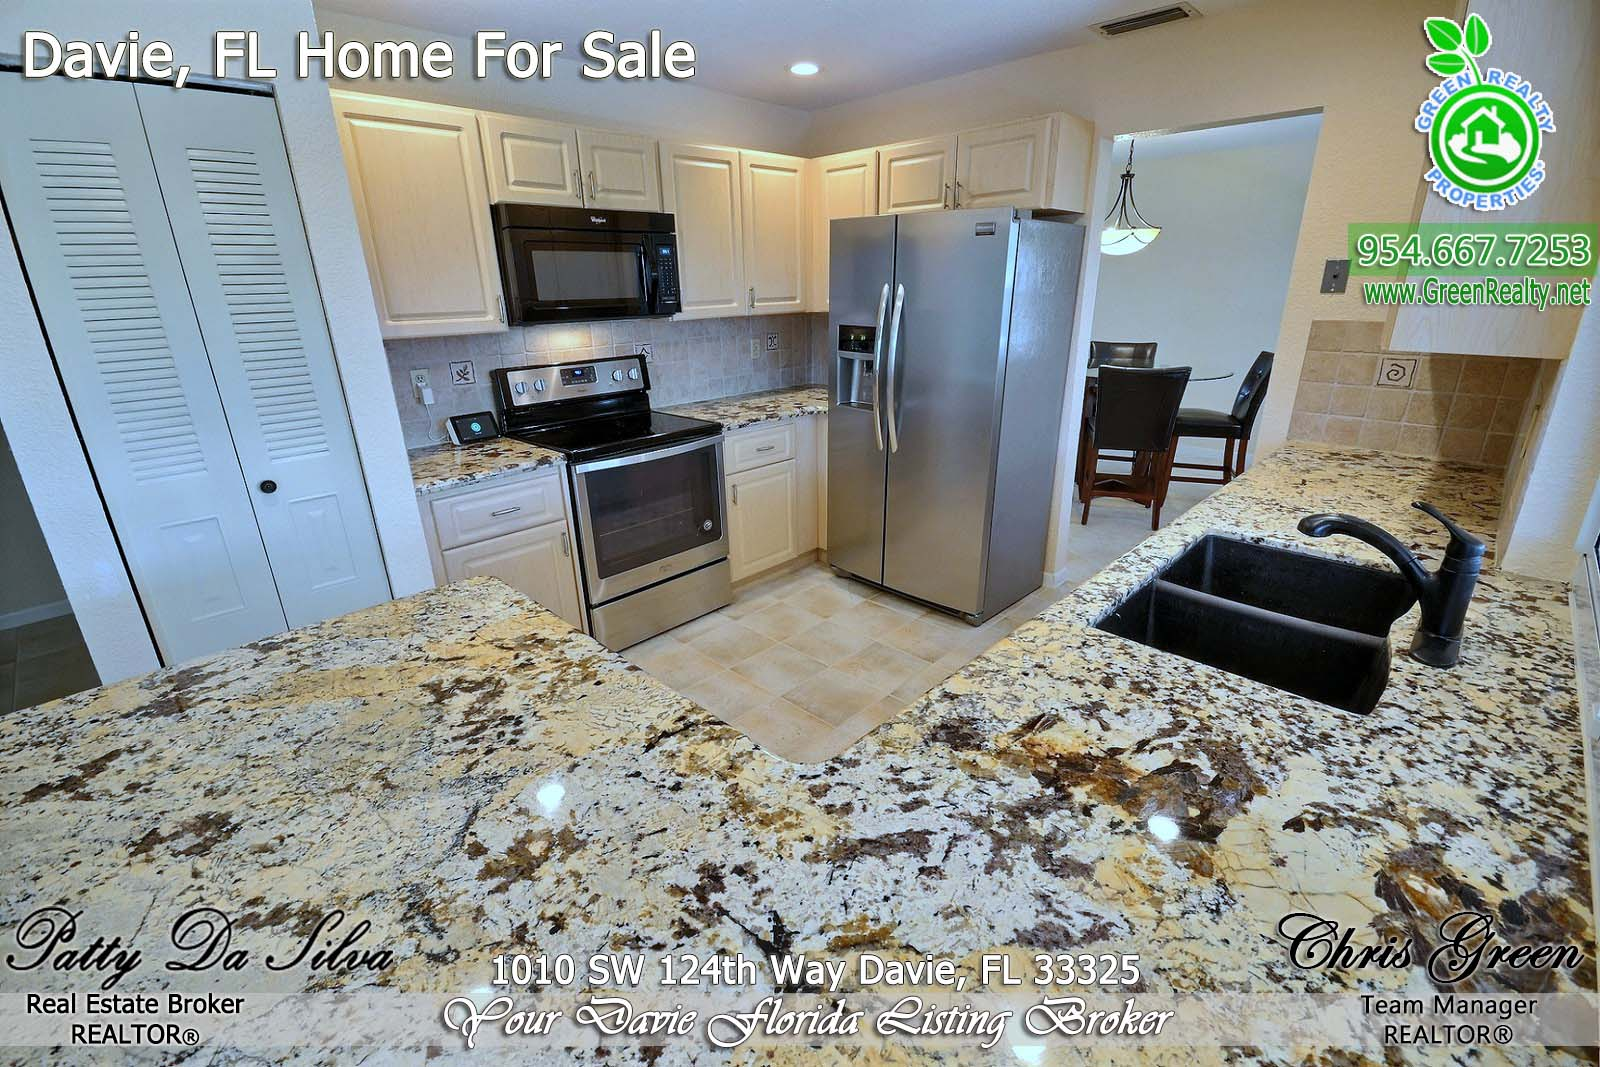 13 Davie Homes For Sale (5)